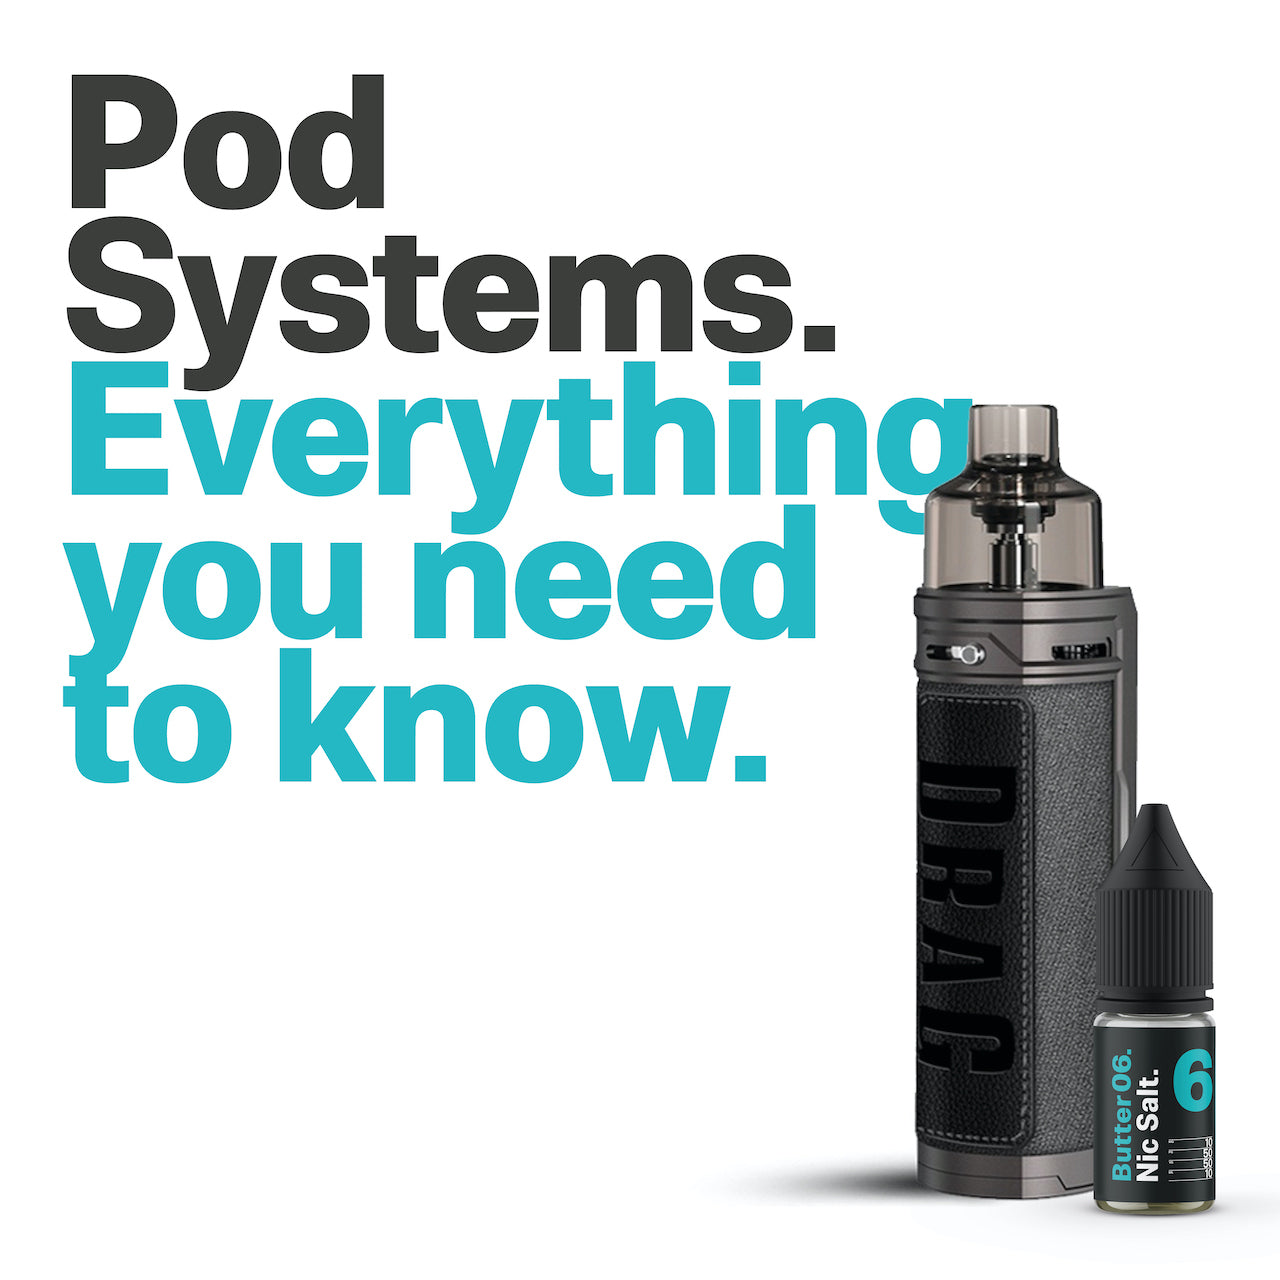 Pod Systems. Everything you need to know.